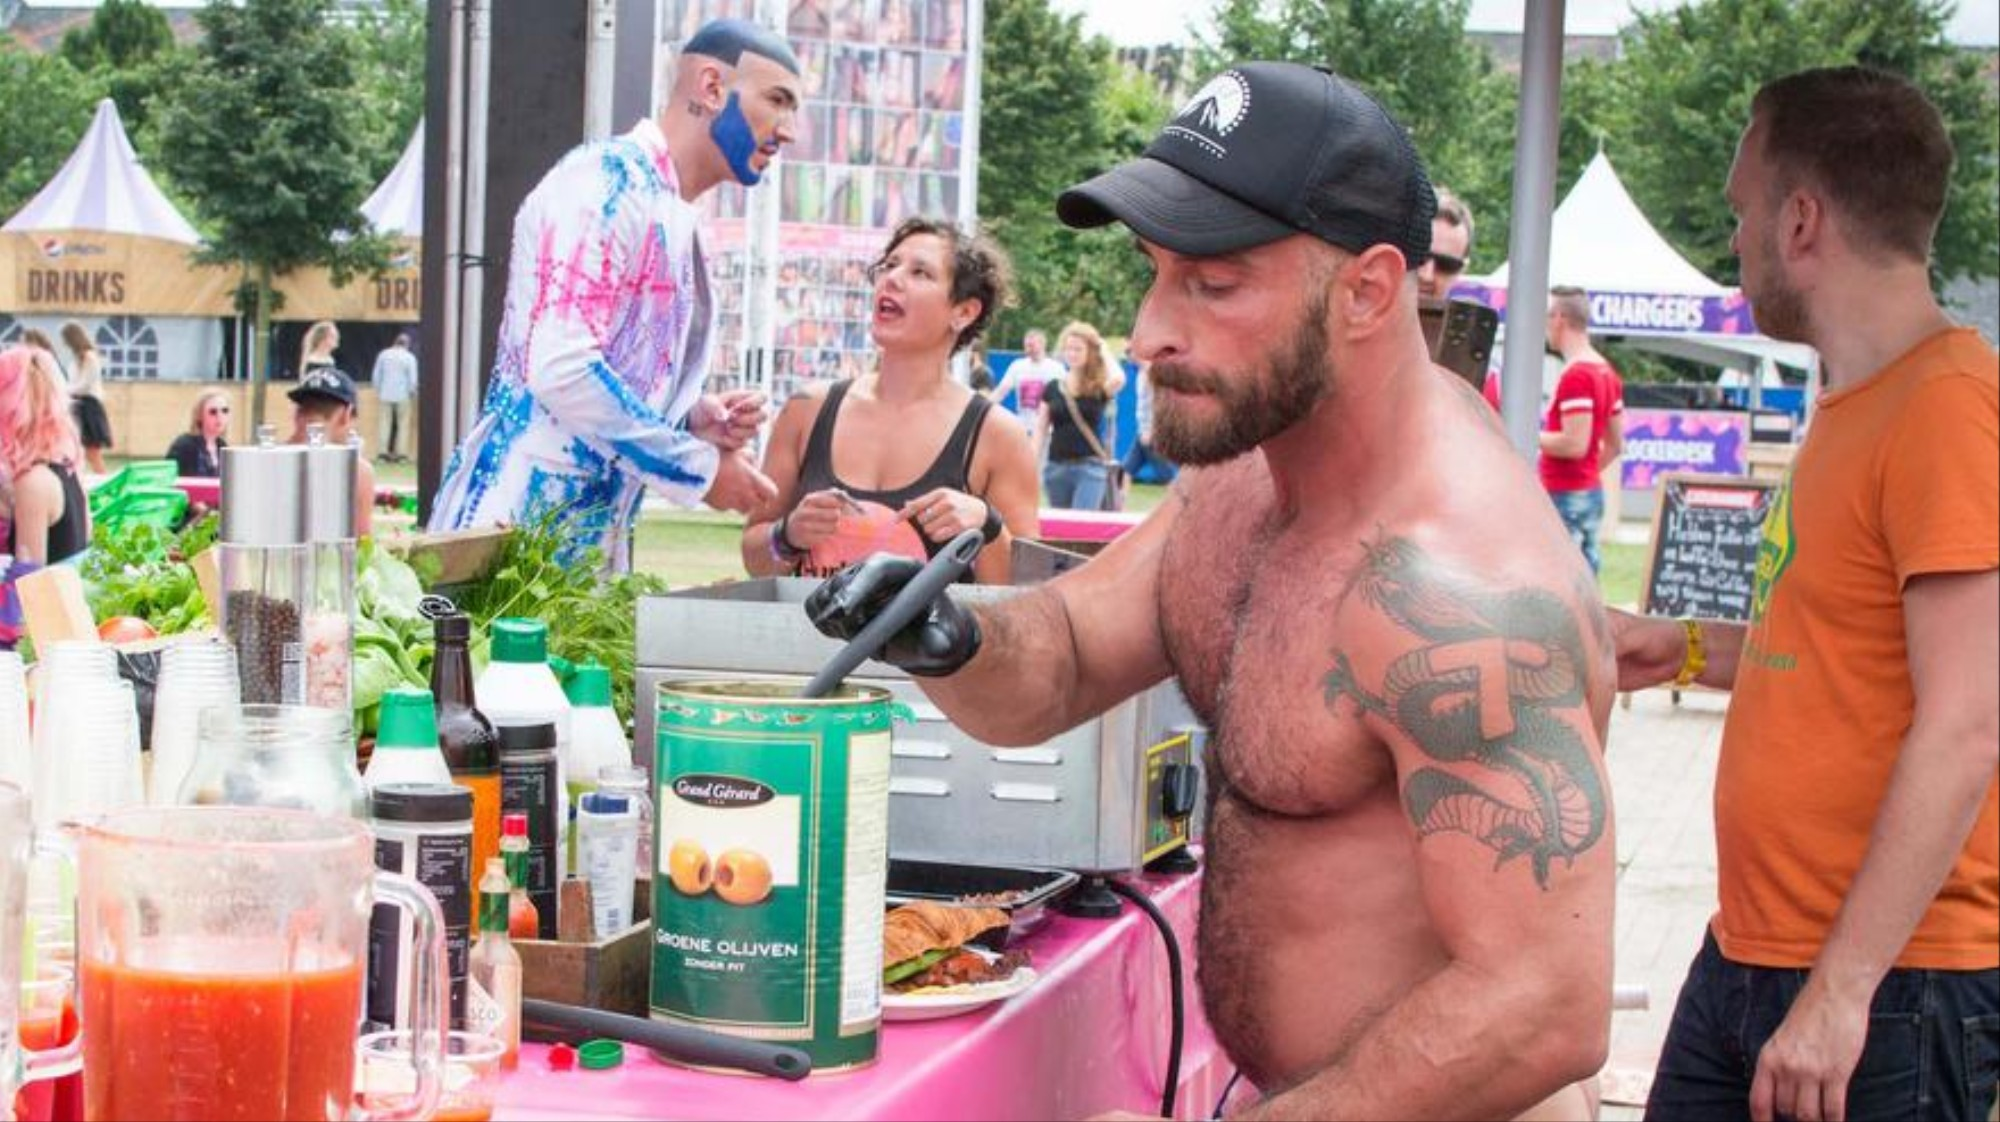 Bears Gays Videos this buff bear loves cooking in the nude - vice